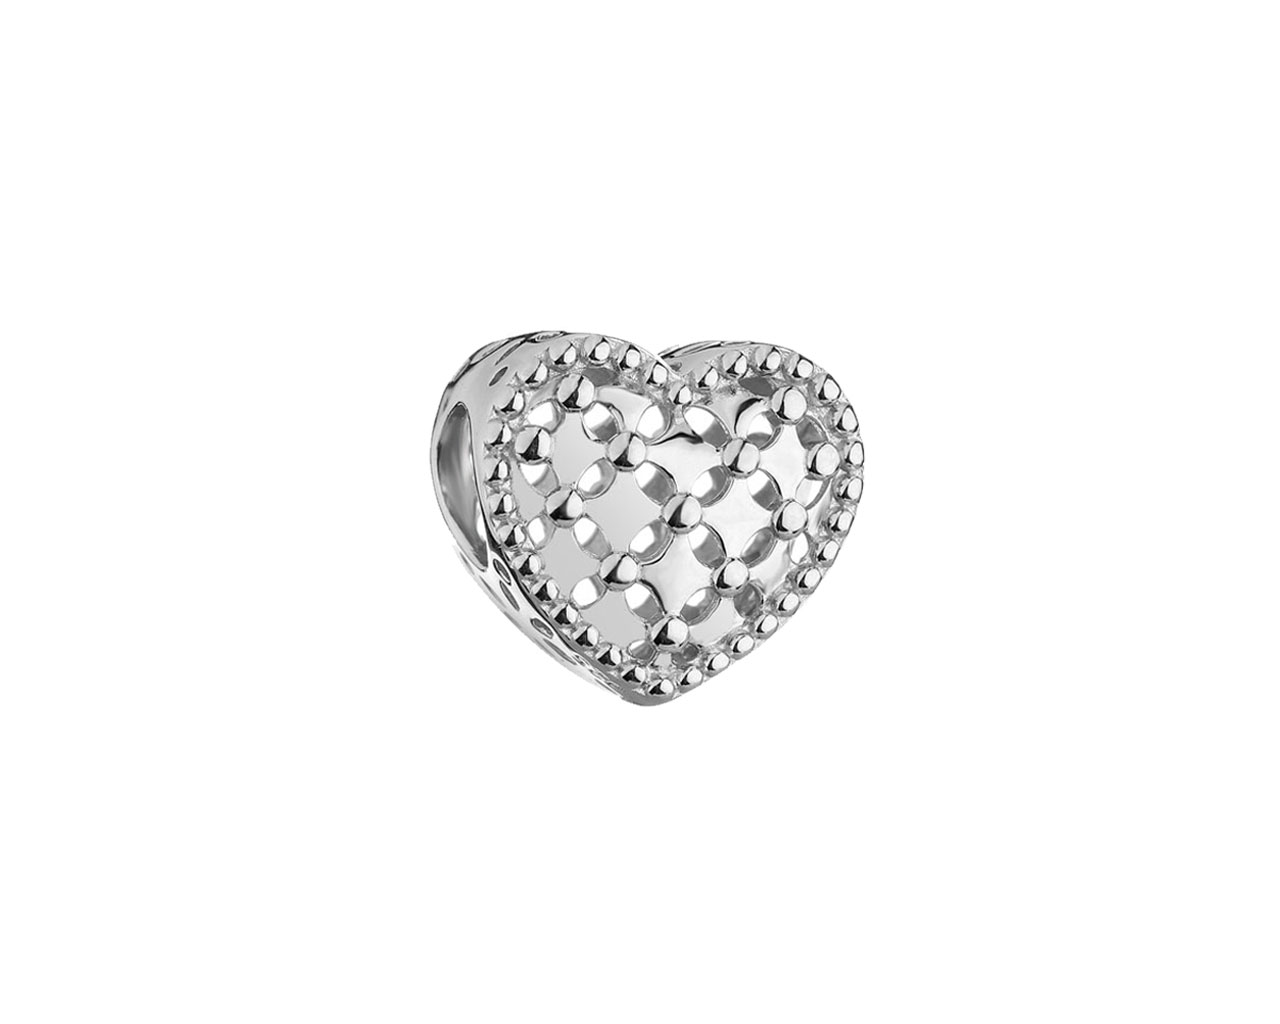 Sterling Silver Beads Pendant - Heart